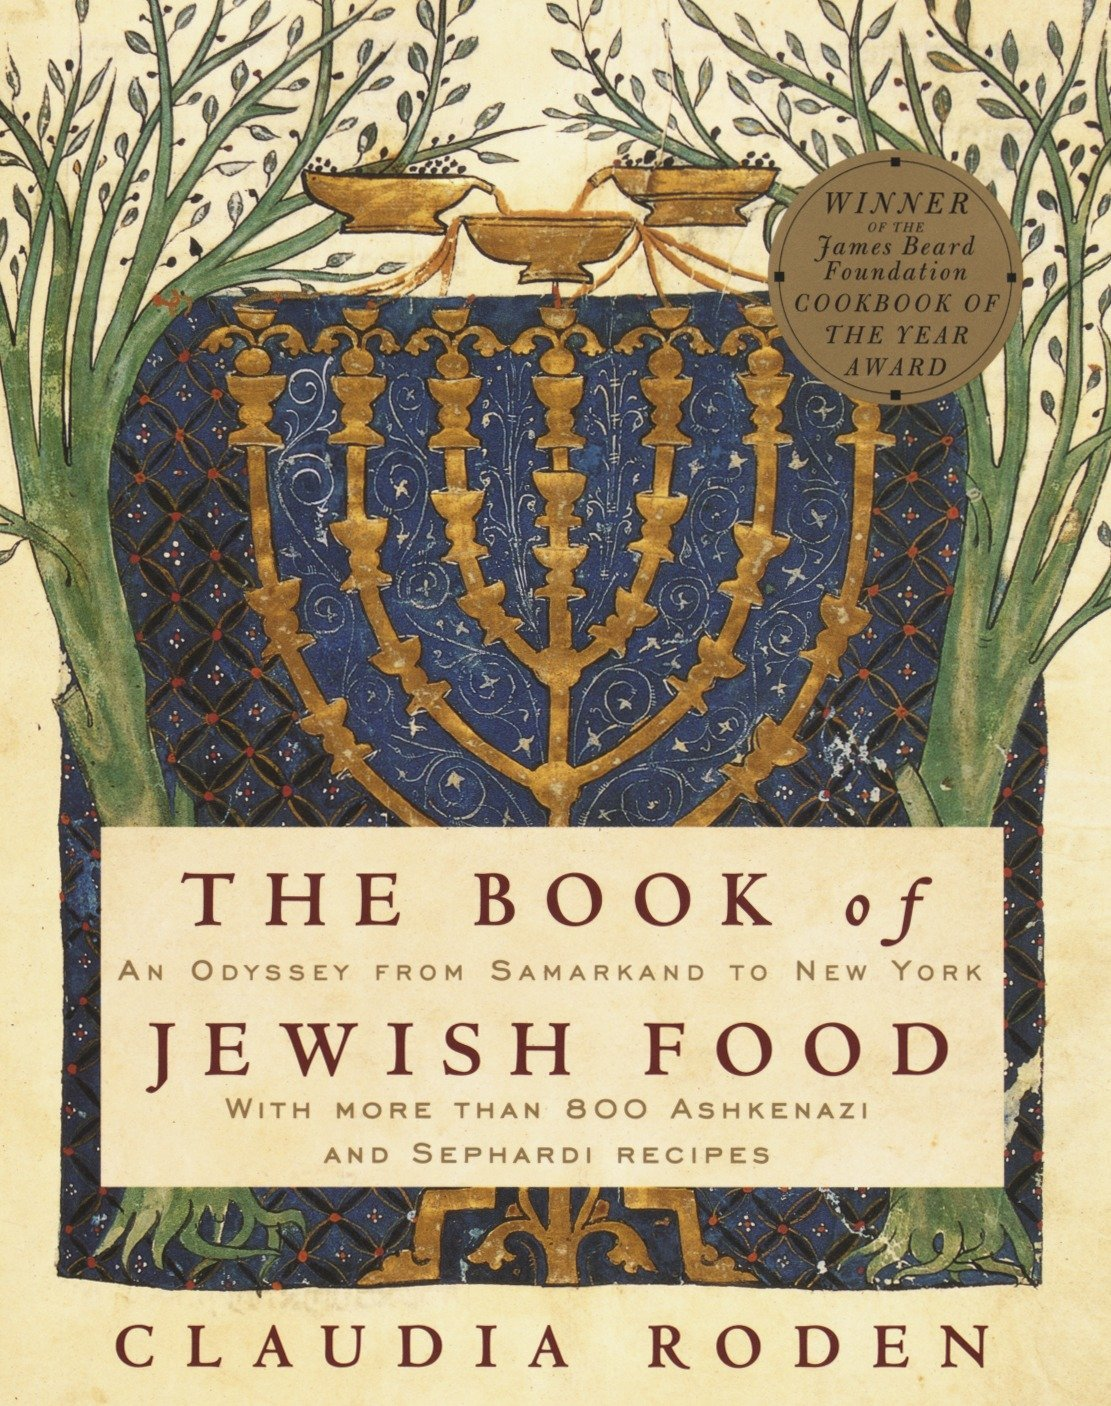 Image OfThe Book Of Jewish Food: An Odyssey From Samarkand To New York: A Cookbook